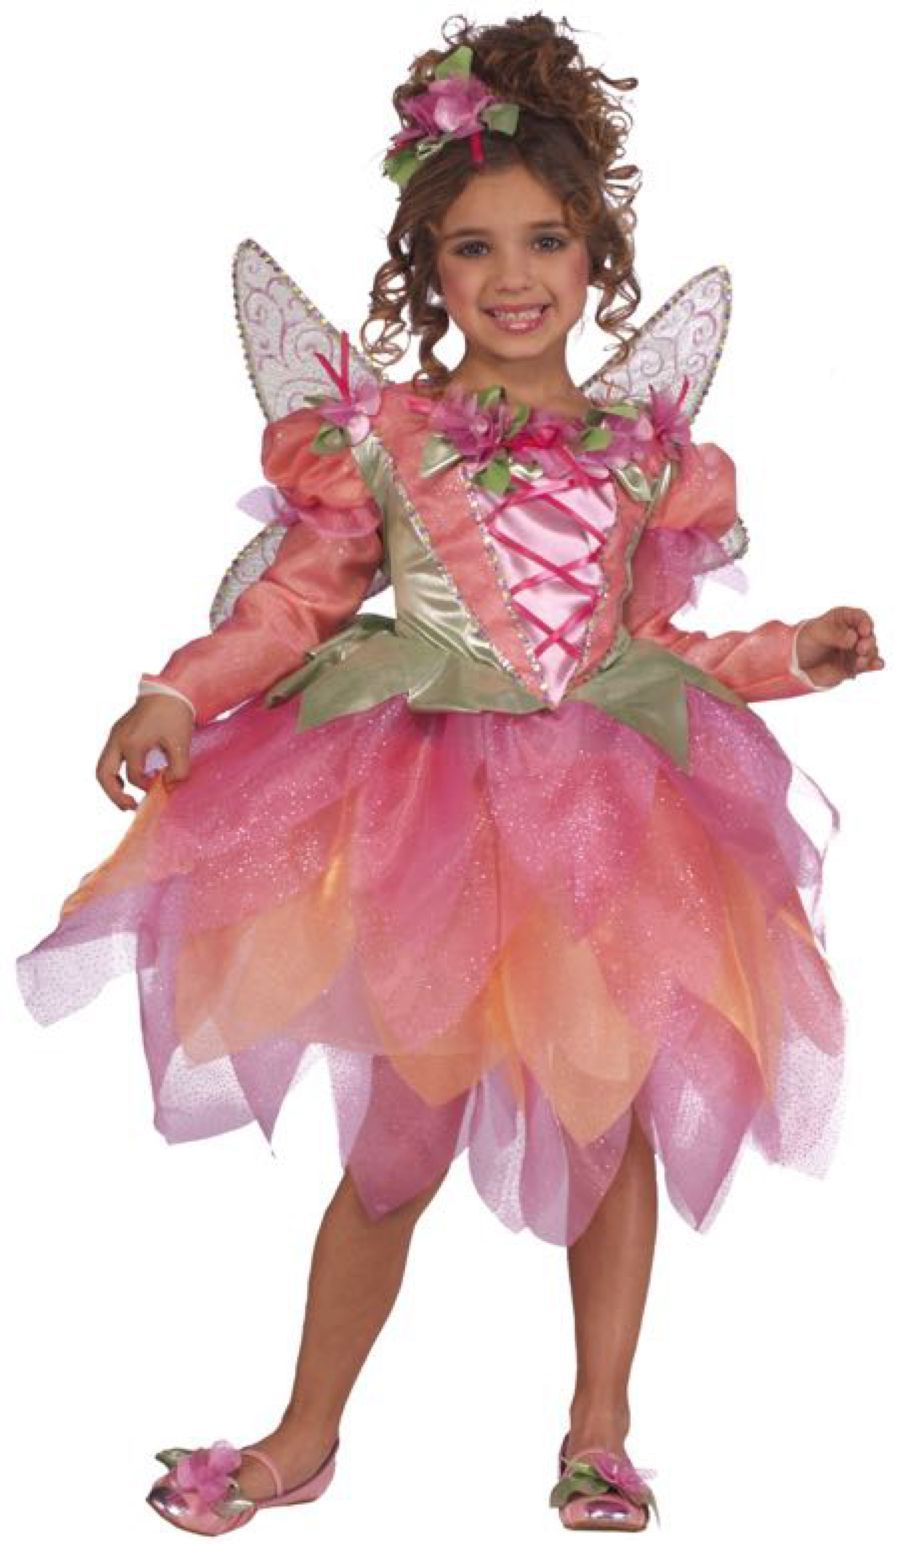 Image 2 of Rubies Deluxe Pink Pixie Girl's Costume w/Tutu Dres, Headpiece, Wings 881759 - P